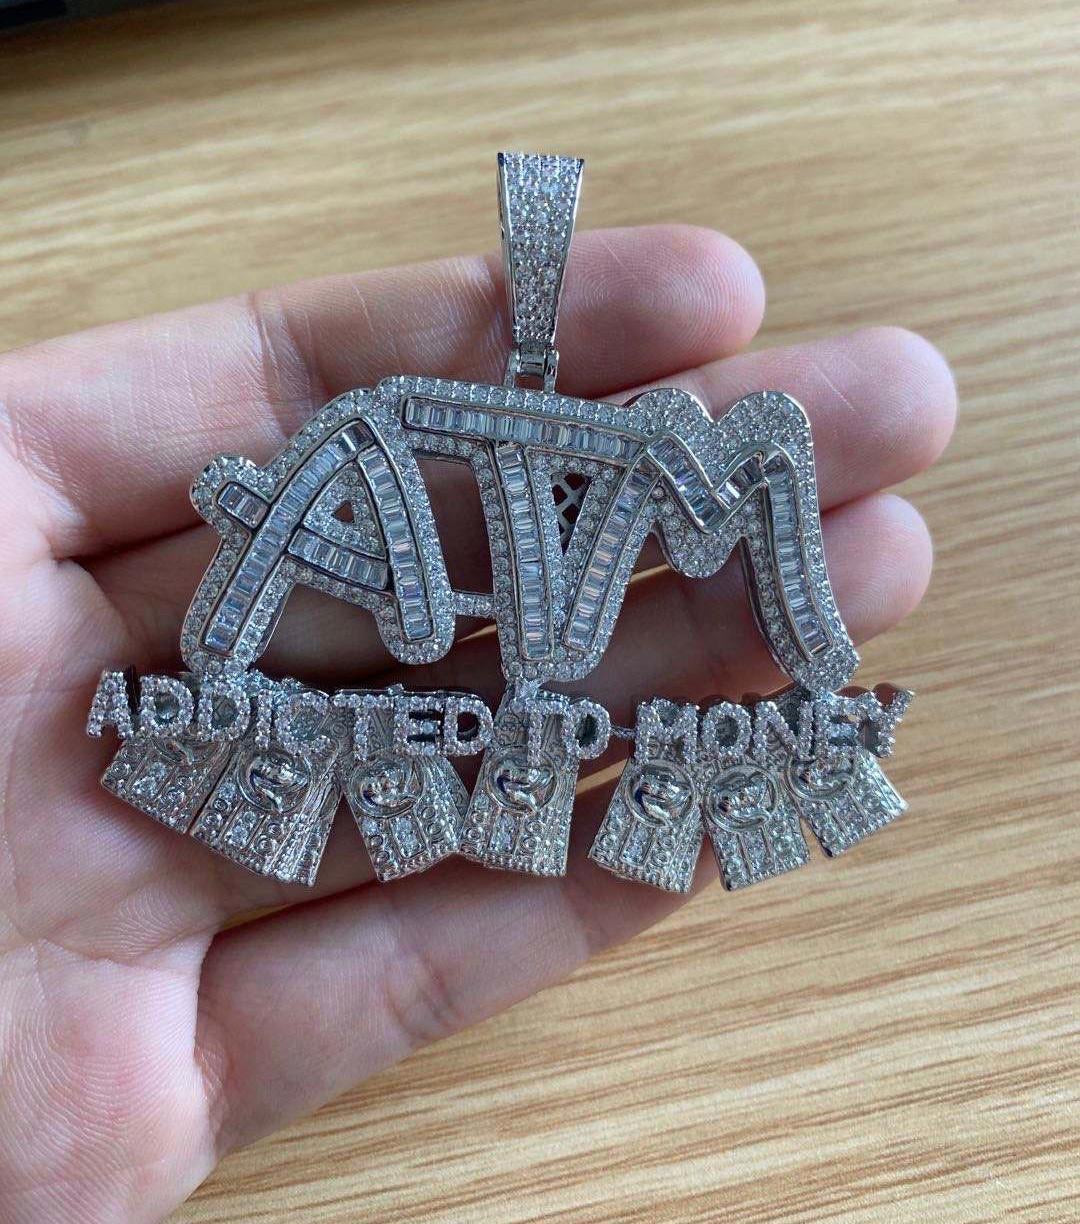 ATM Pendant with Necklace